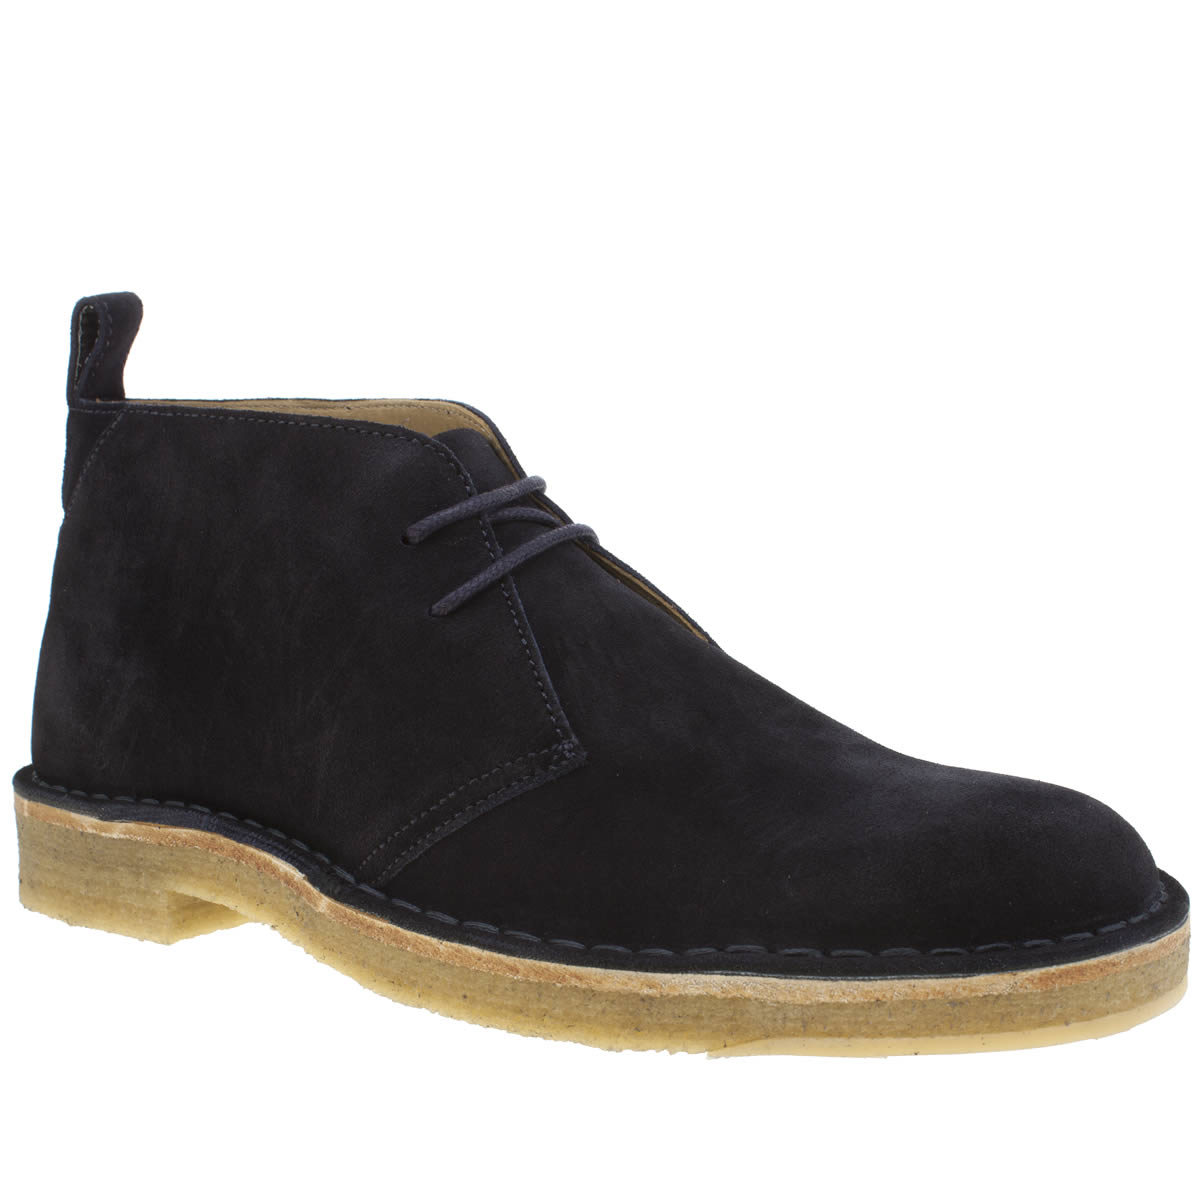 paul smith shoe ps Paul Smith Shoe Ps Navy Wilf Boots